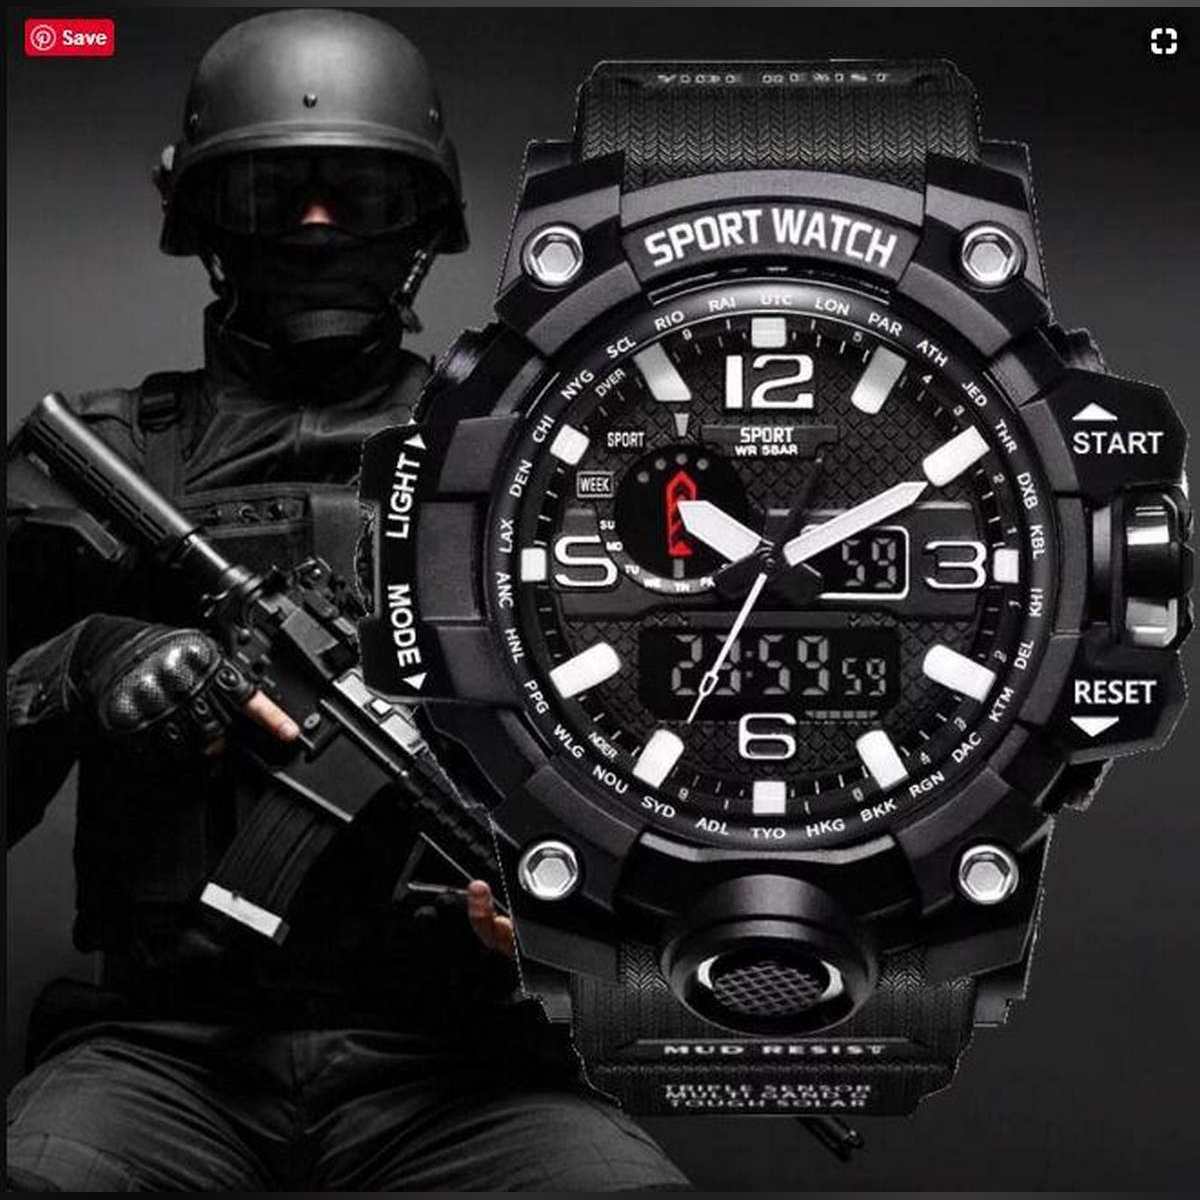 1155 Adult Double Time Watches for Boys & Men's Wristwatch Dual Display Water proof Digital Electronic 50M Watch 4 Color Luminous LED Light Sport Watch